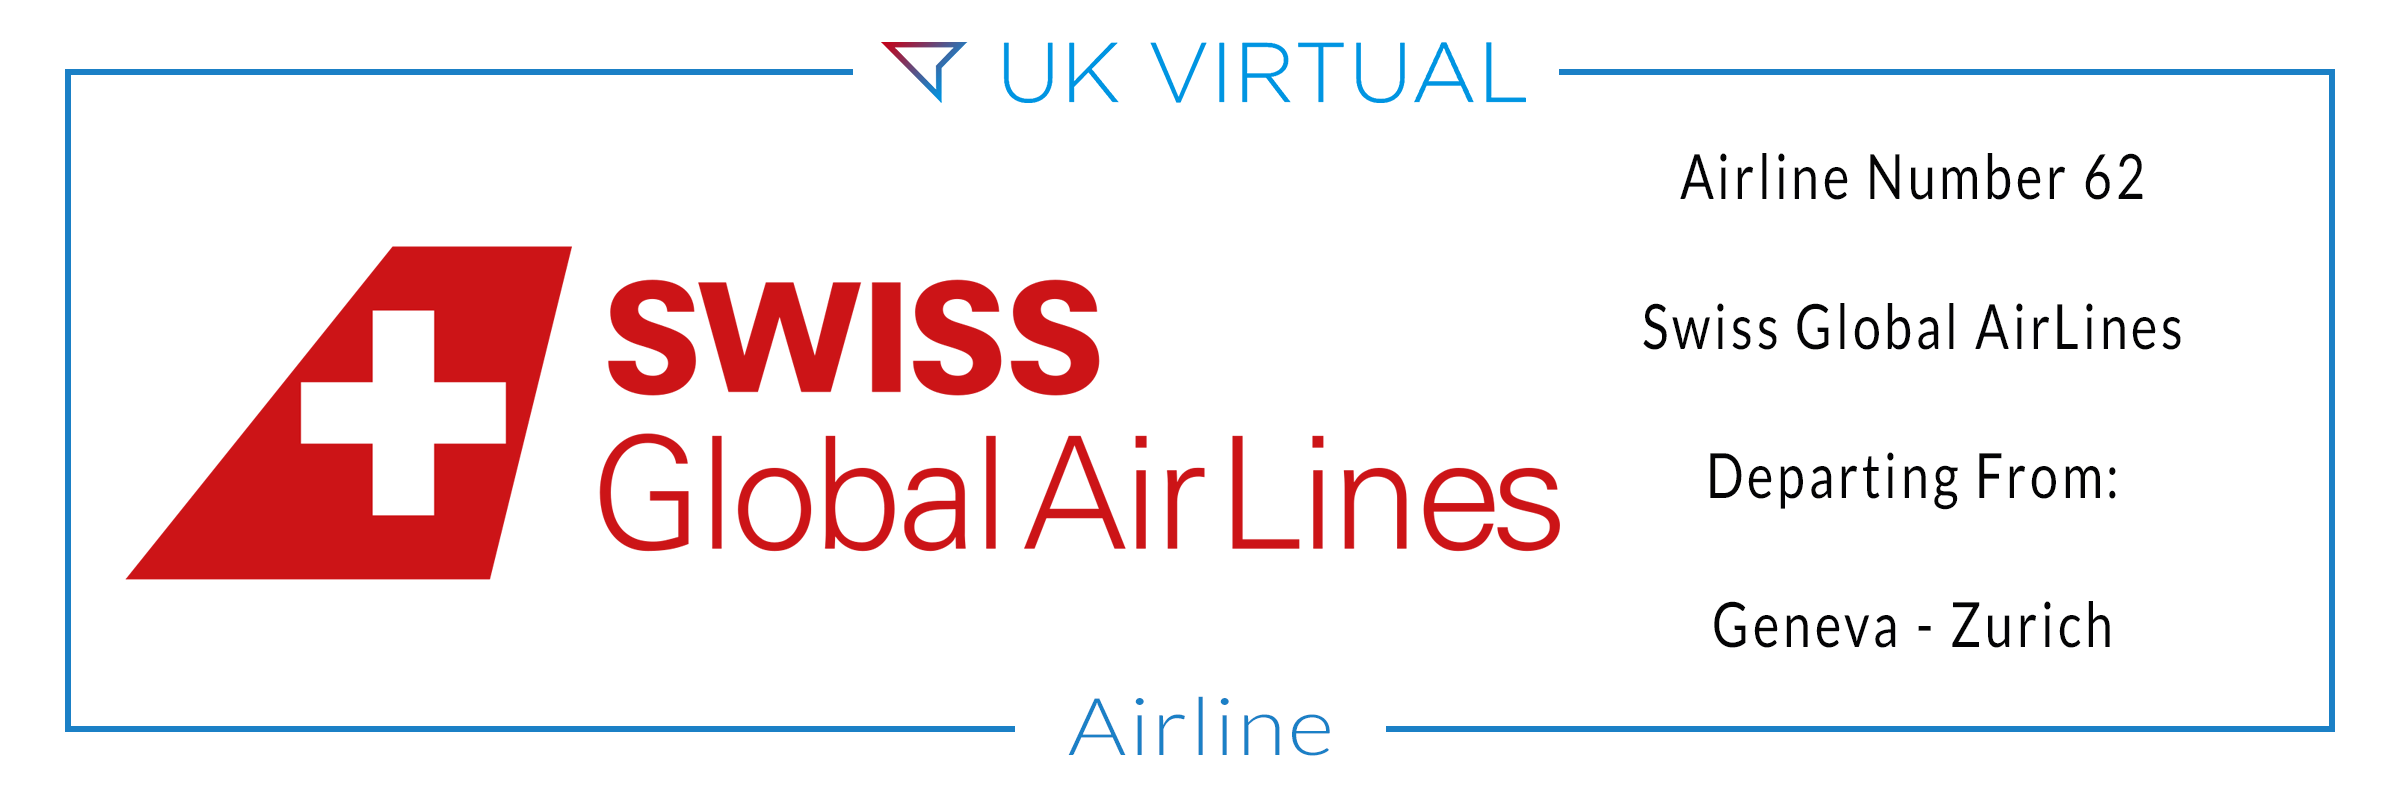 Airline Number 62: Swiss Global Air Lines